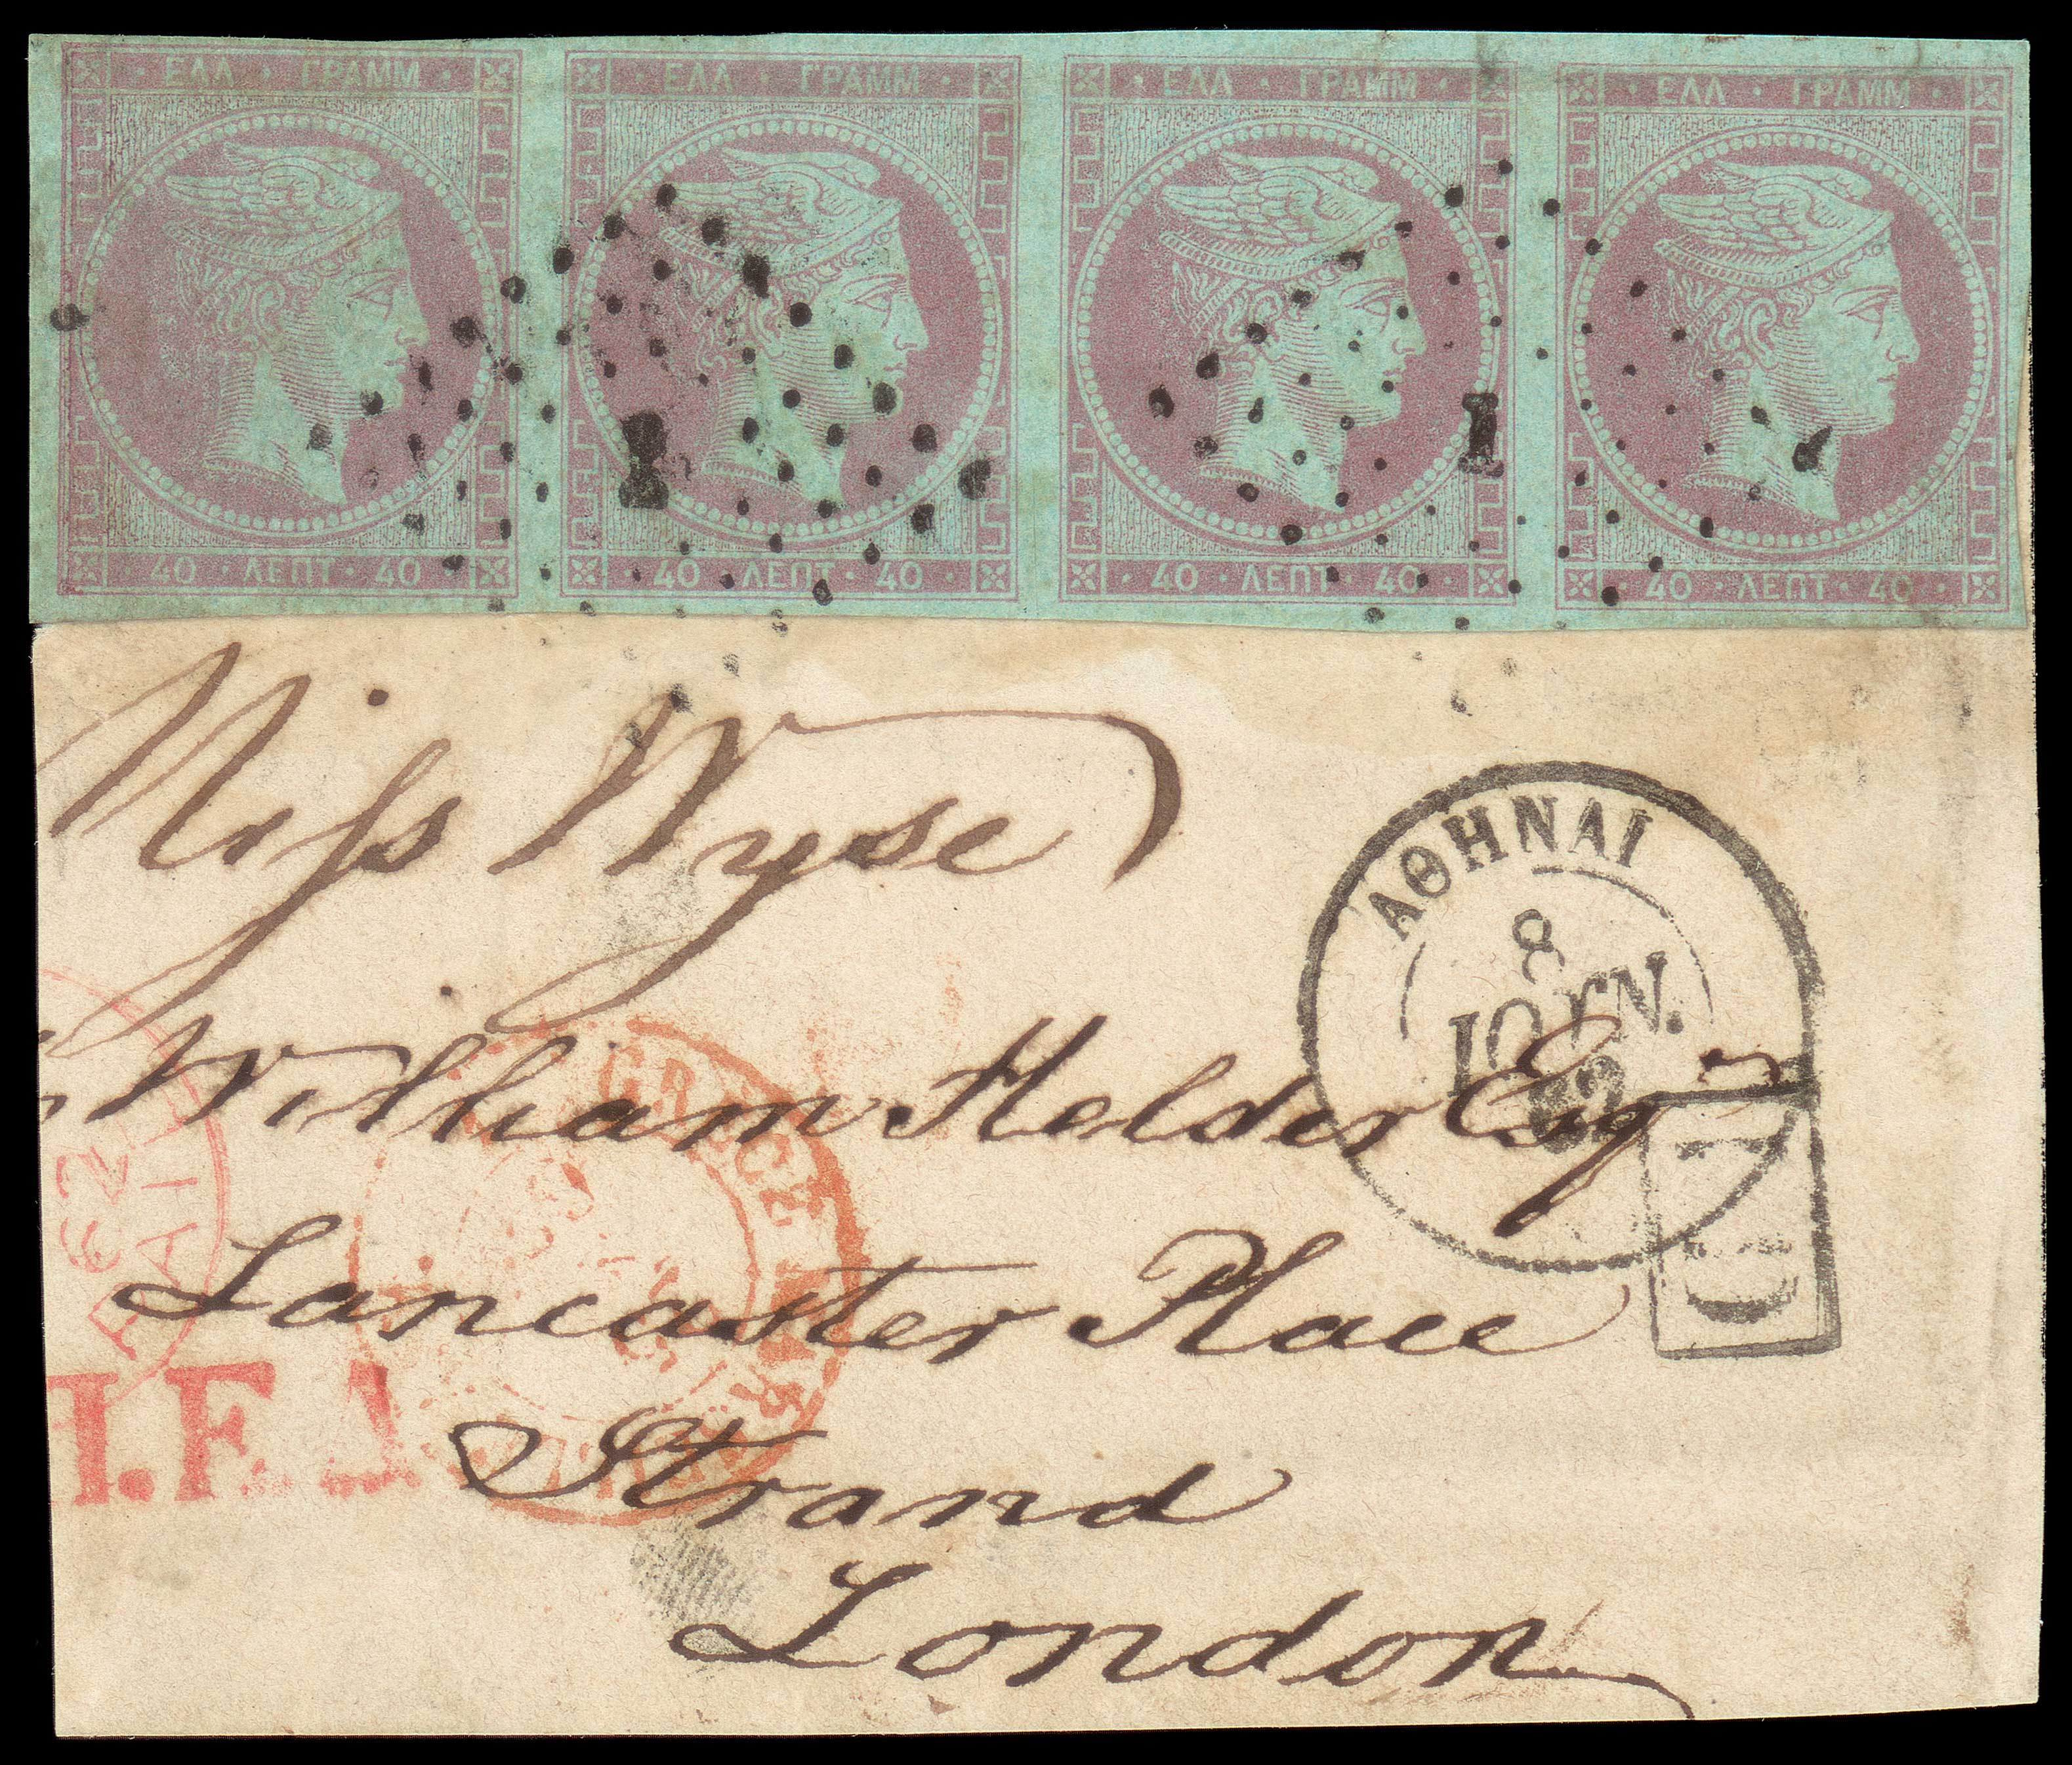 Lot 67 - -  LARGE HERMES HEAD 1861/1862 athens provisional printings -  A. Karamitsos Public & Live Internet Auction 666 Large Hermes Heads Exceptional Stamps from Great Collections